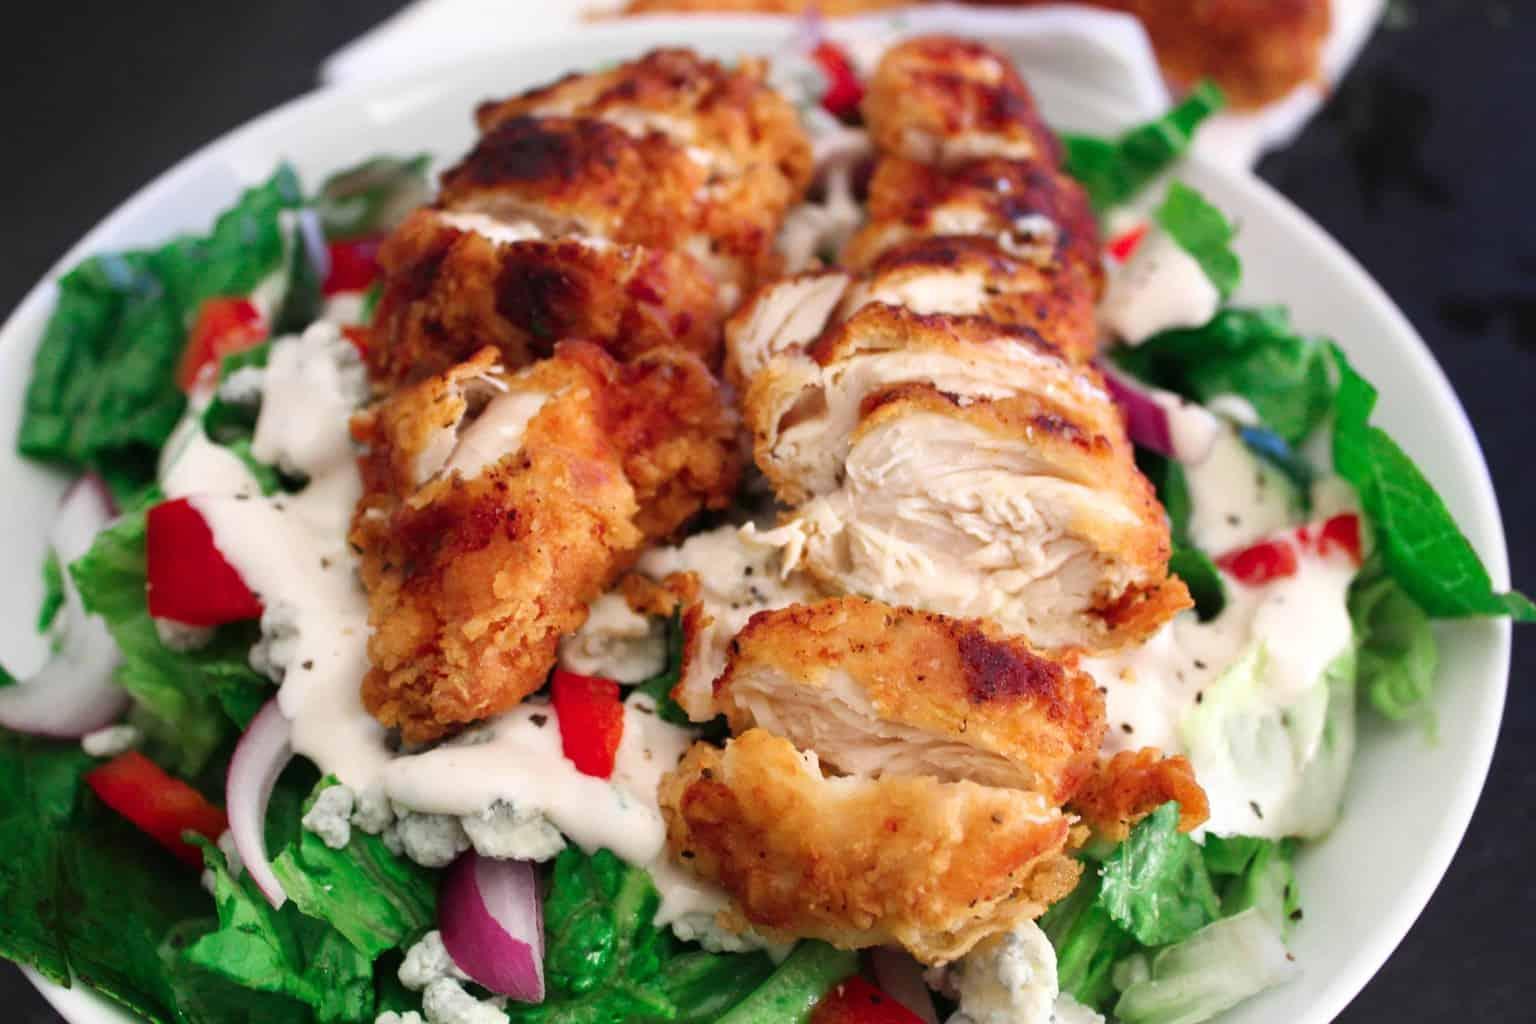 Fried chicken slices over green salad